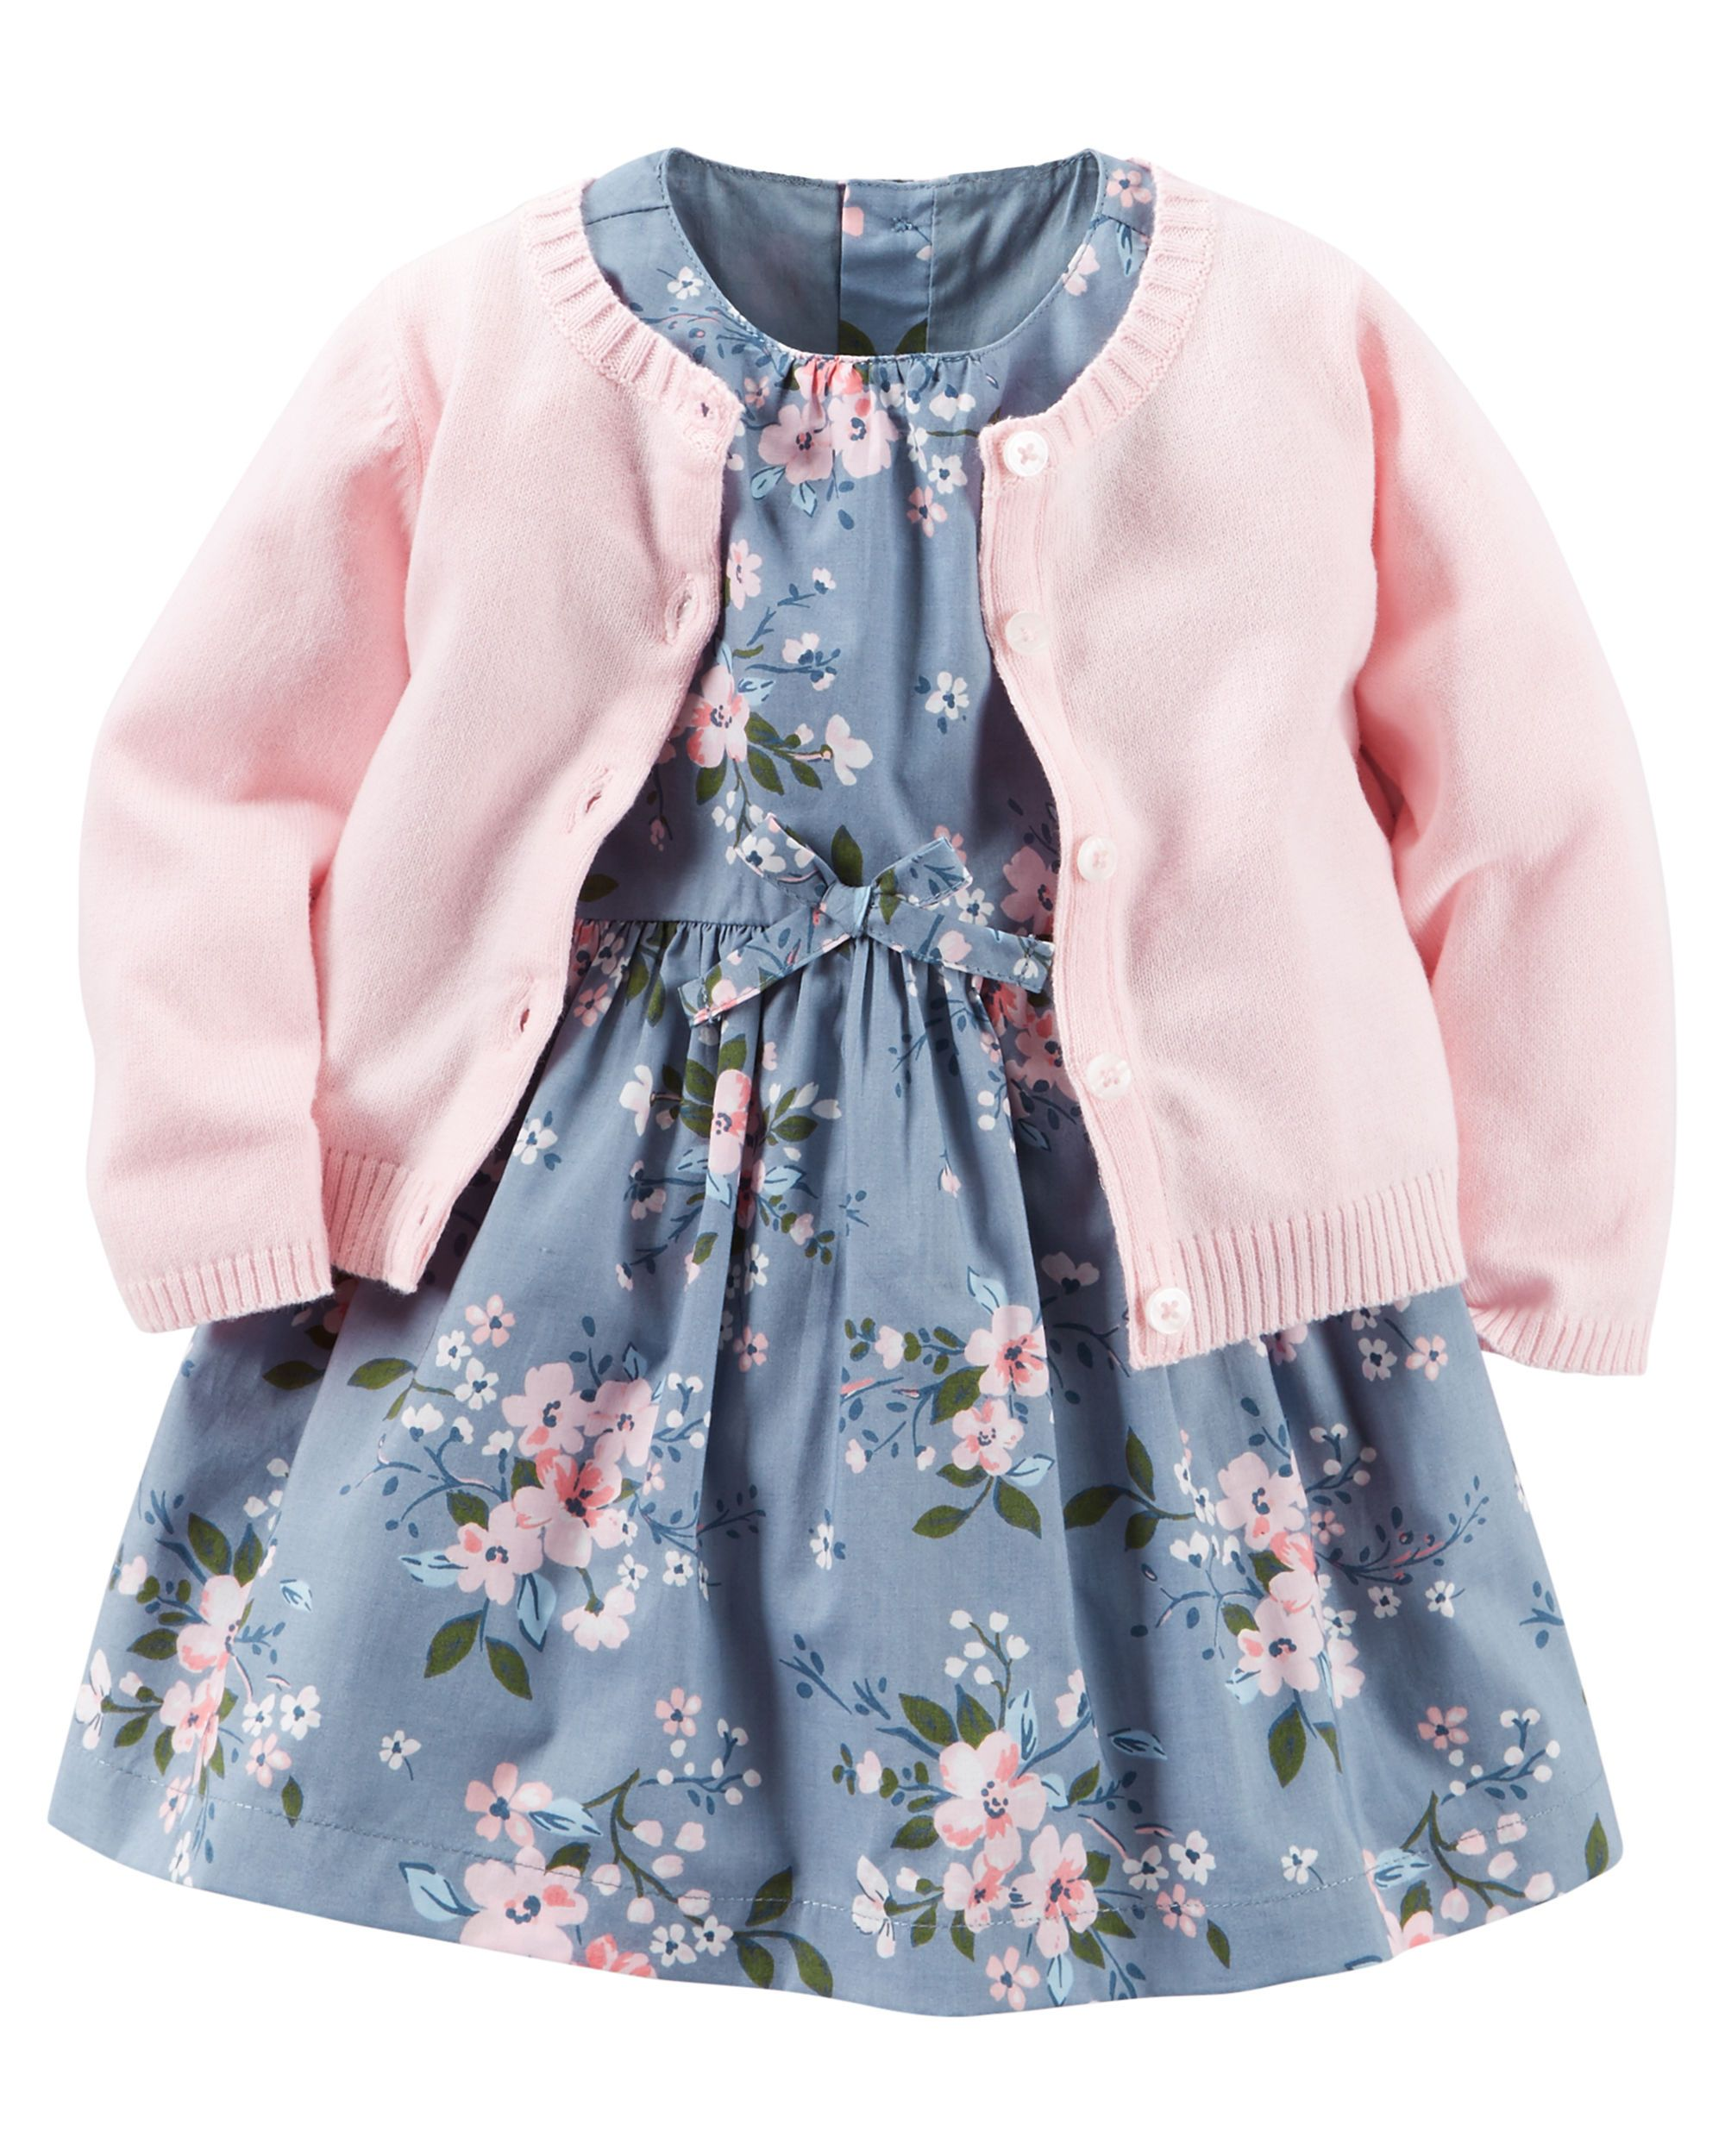 c6586308dad4 2-Piece Dress   Cardigan Set